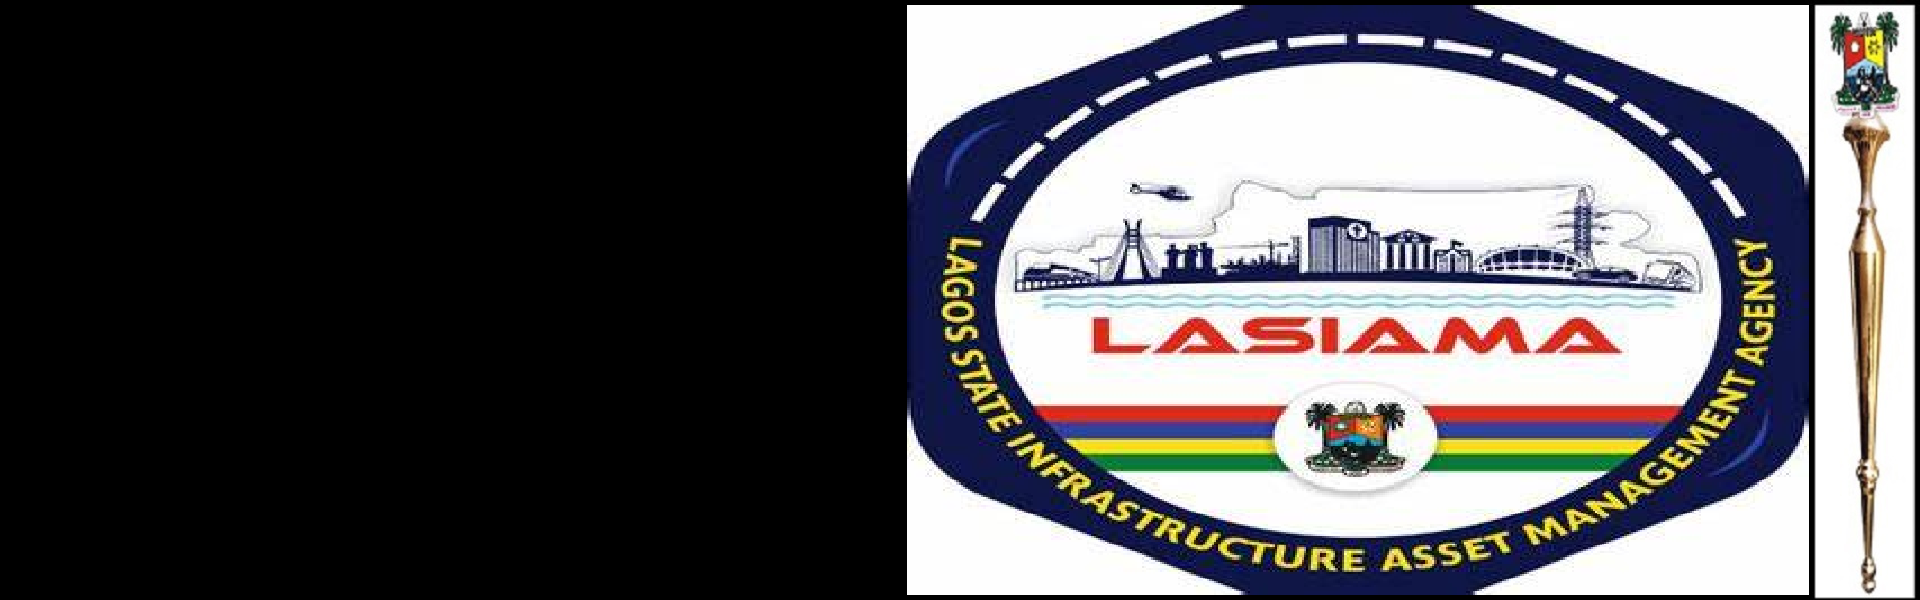 LSHA APPROVES 2BN CAPITAL EXPENDITURE FOR LASIAMA